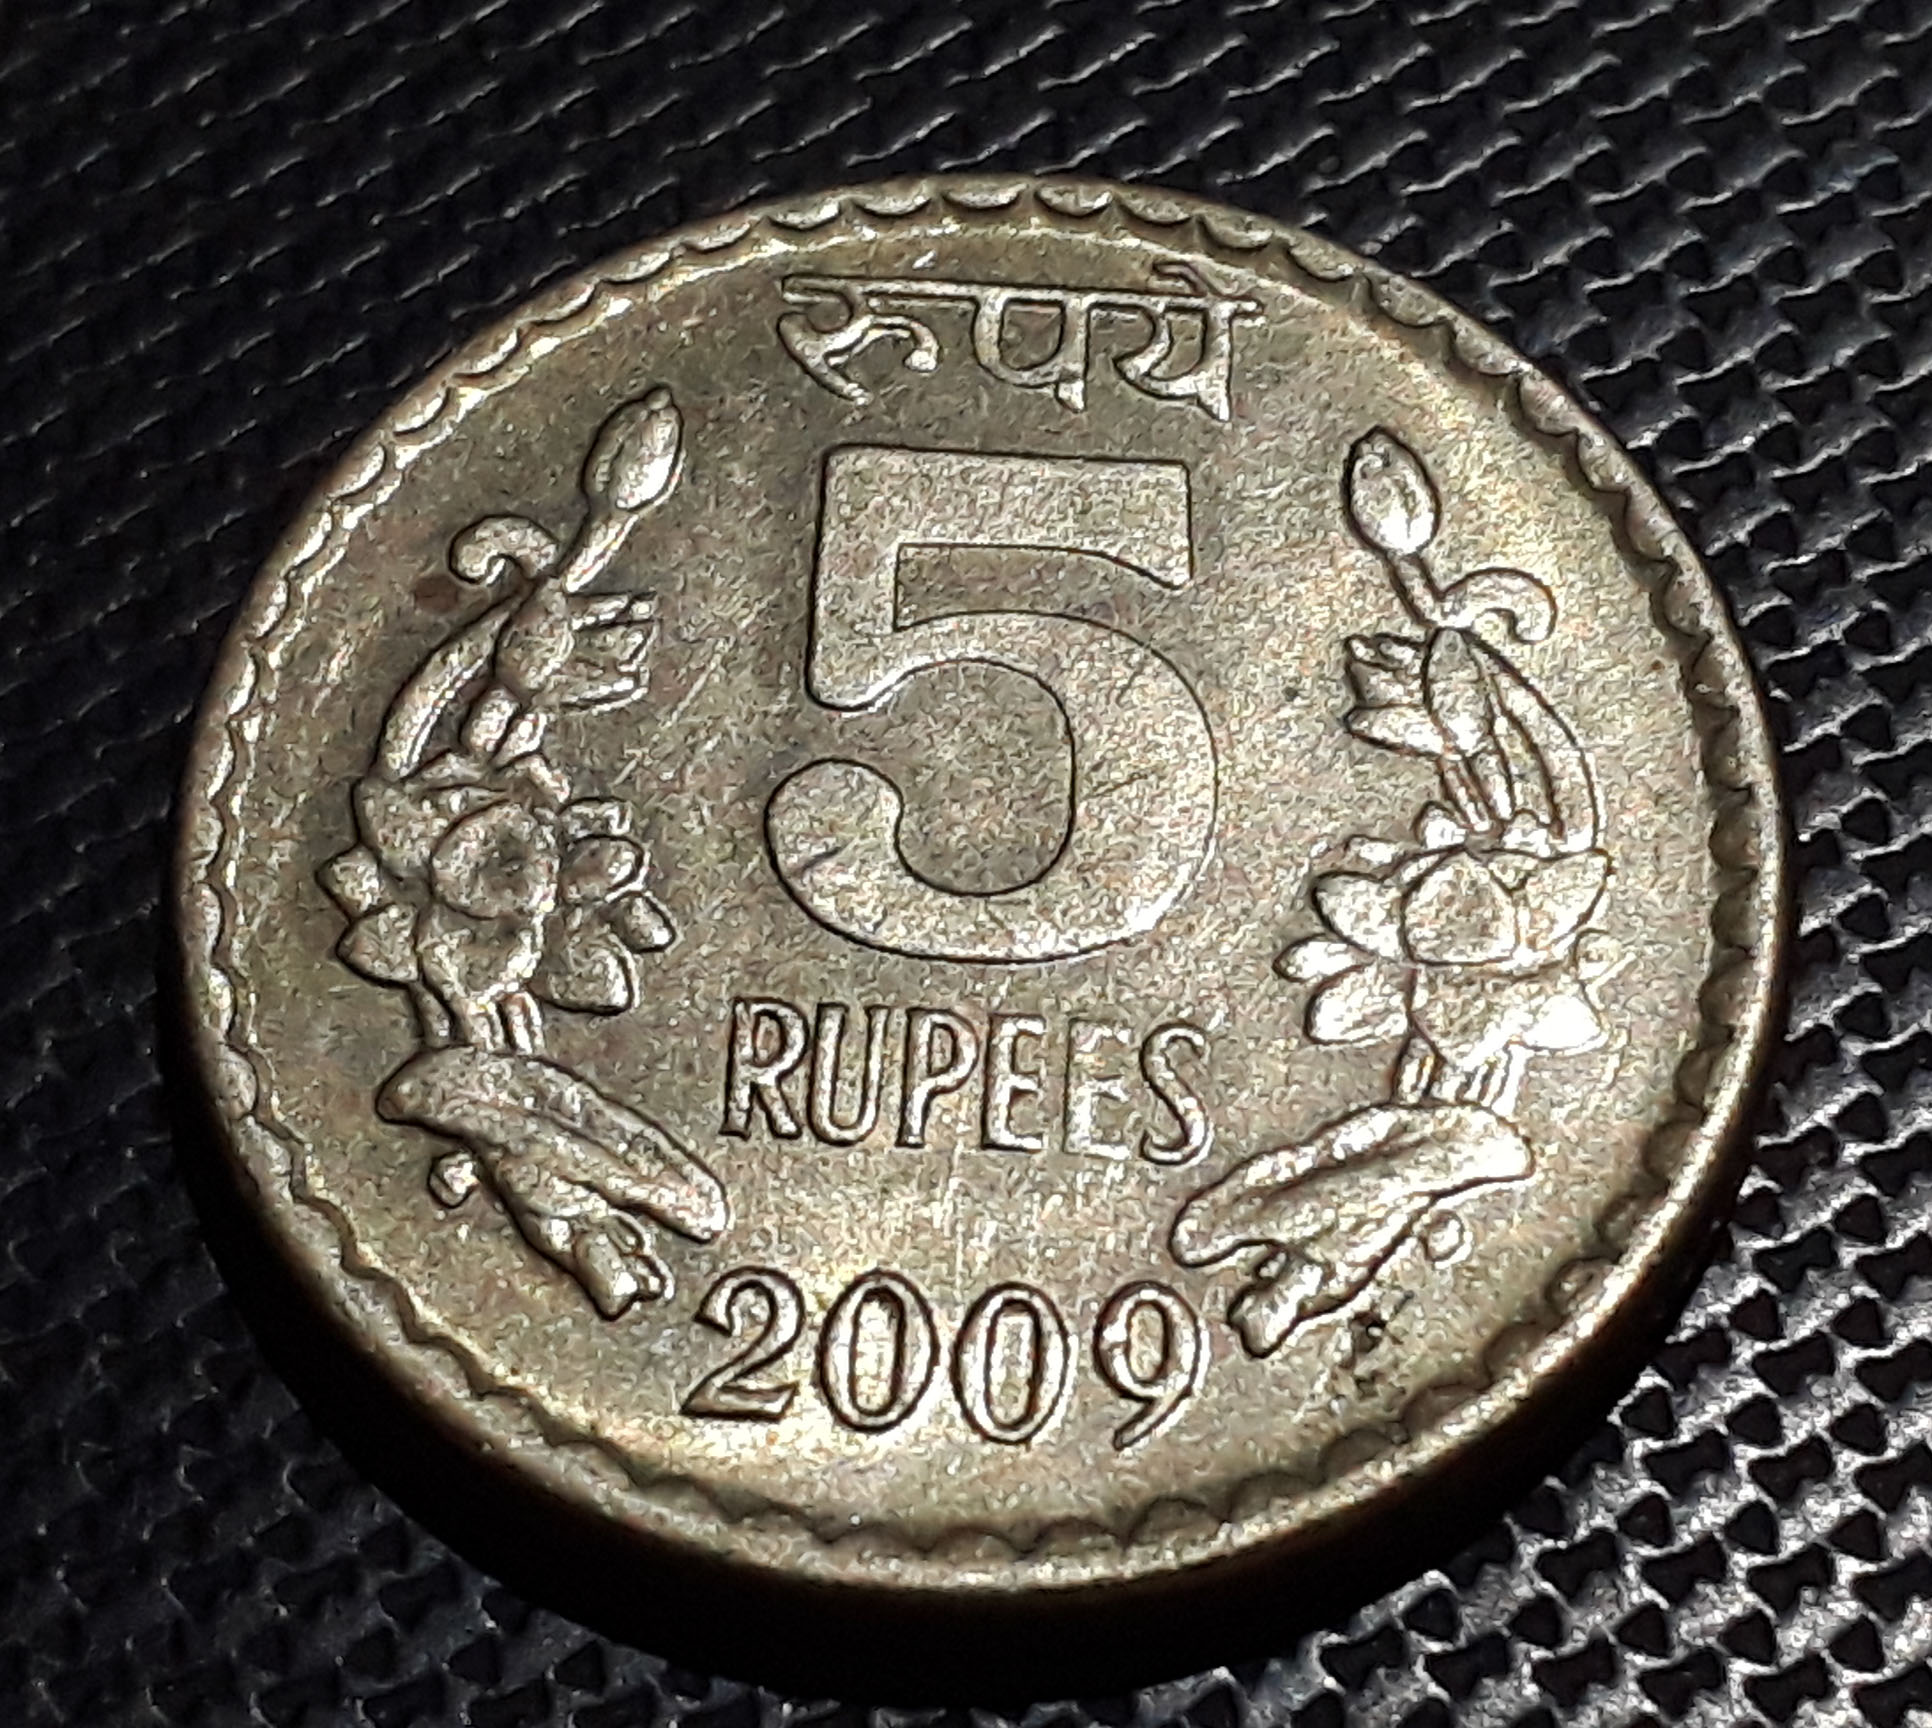 GEM UNC India 2009 - 5 Rupees Nickel-Brass Coin - Value flanked by flowers